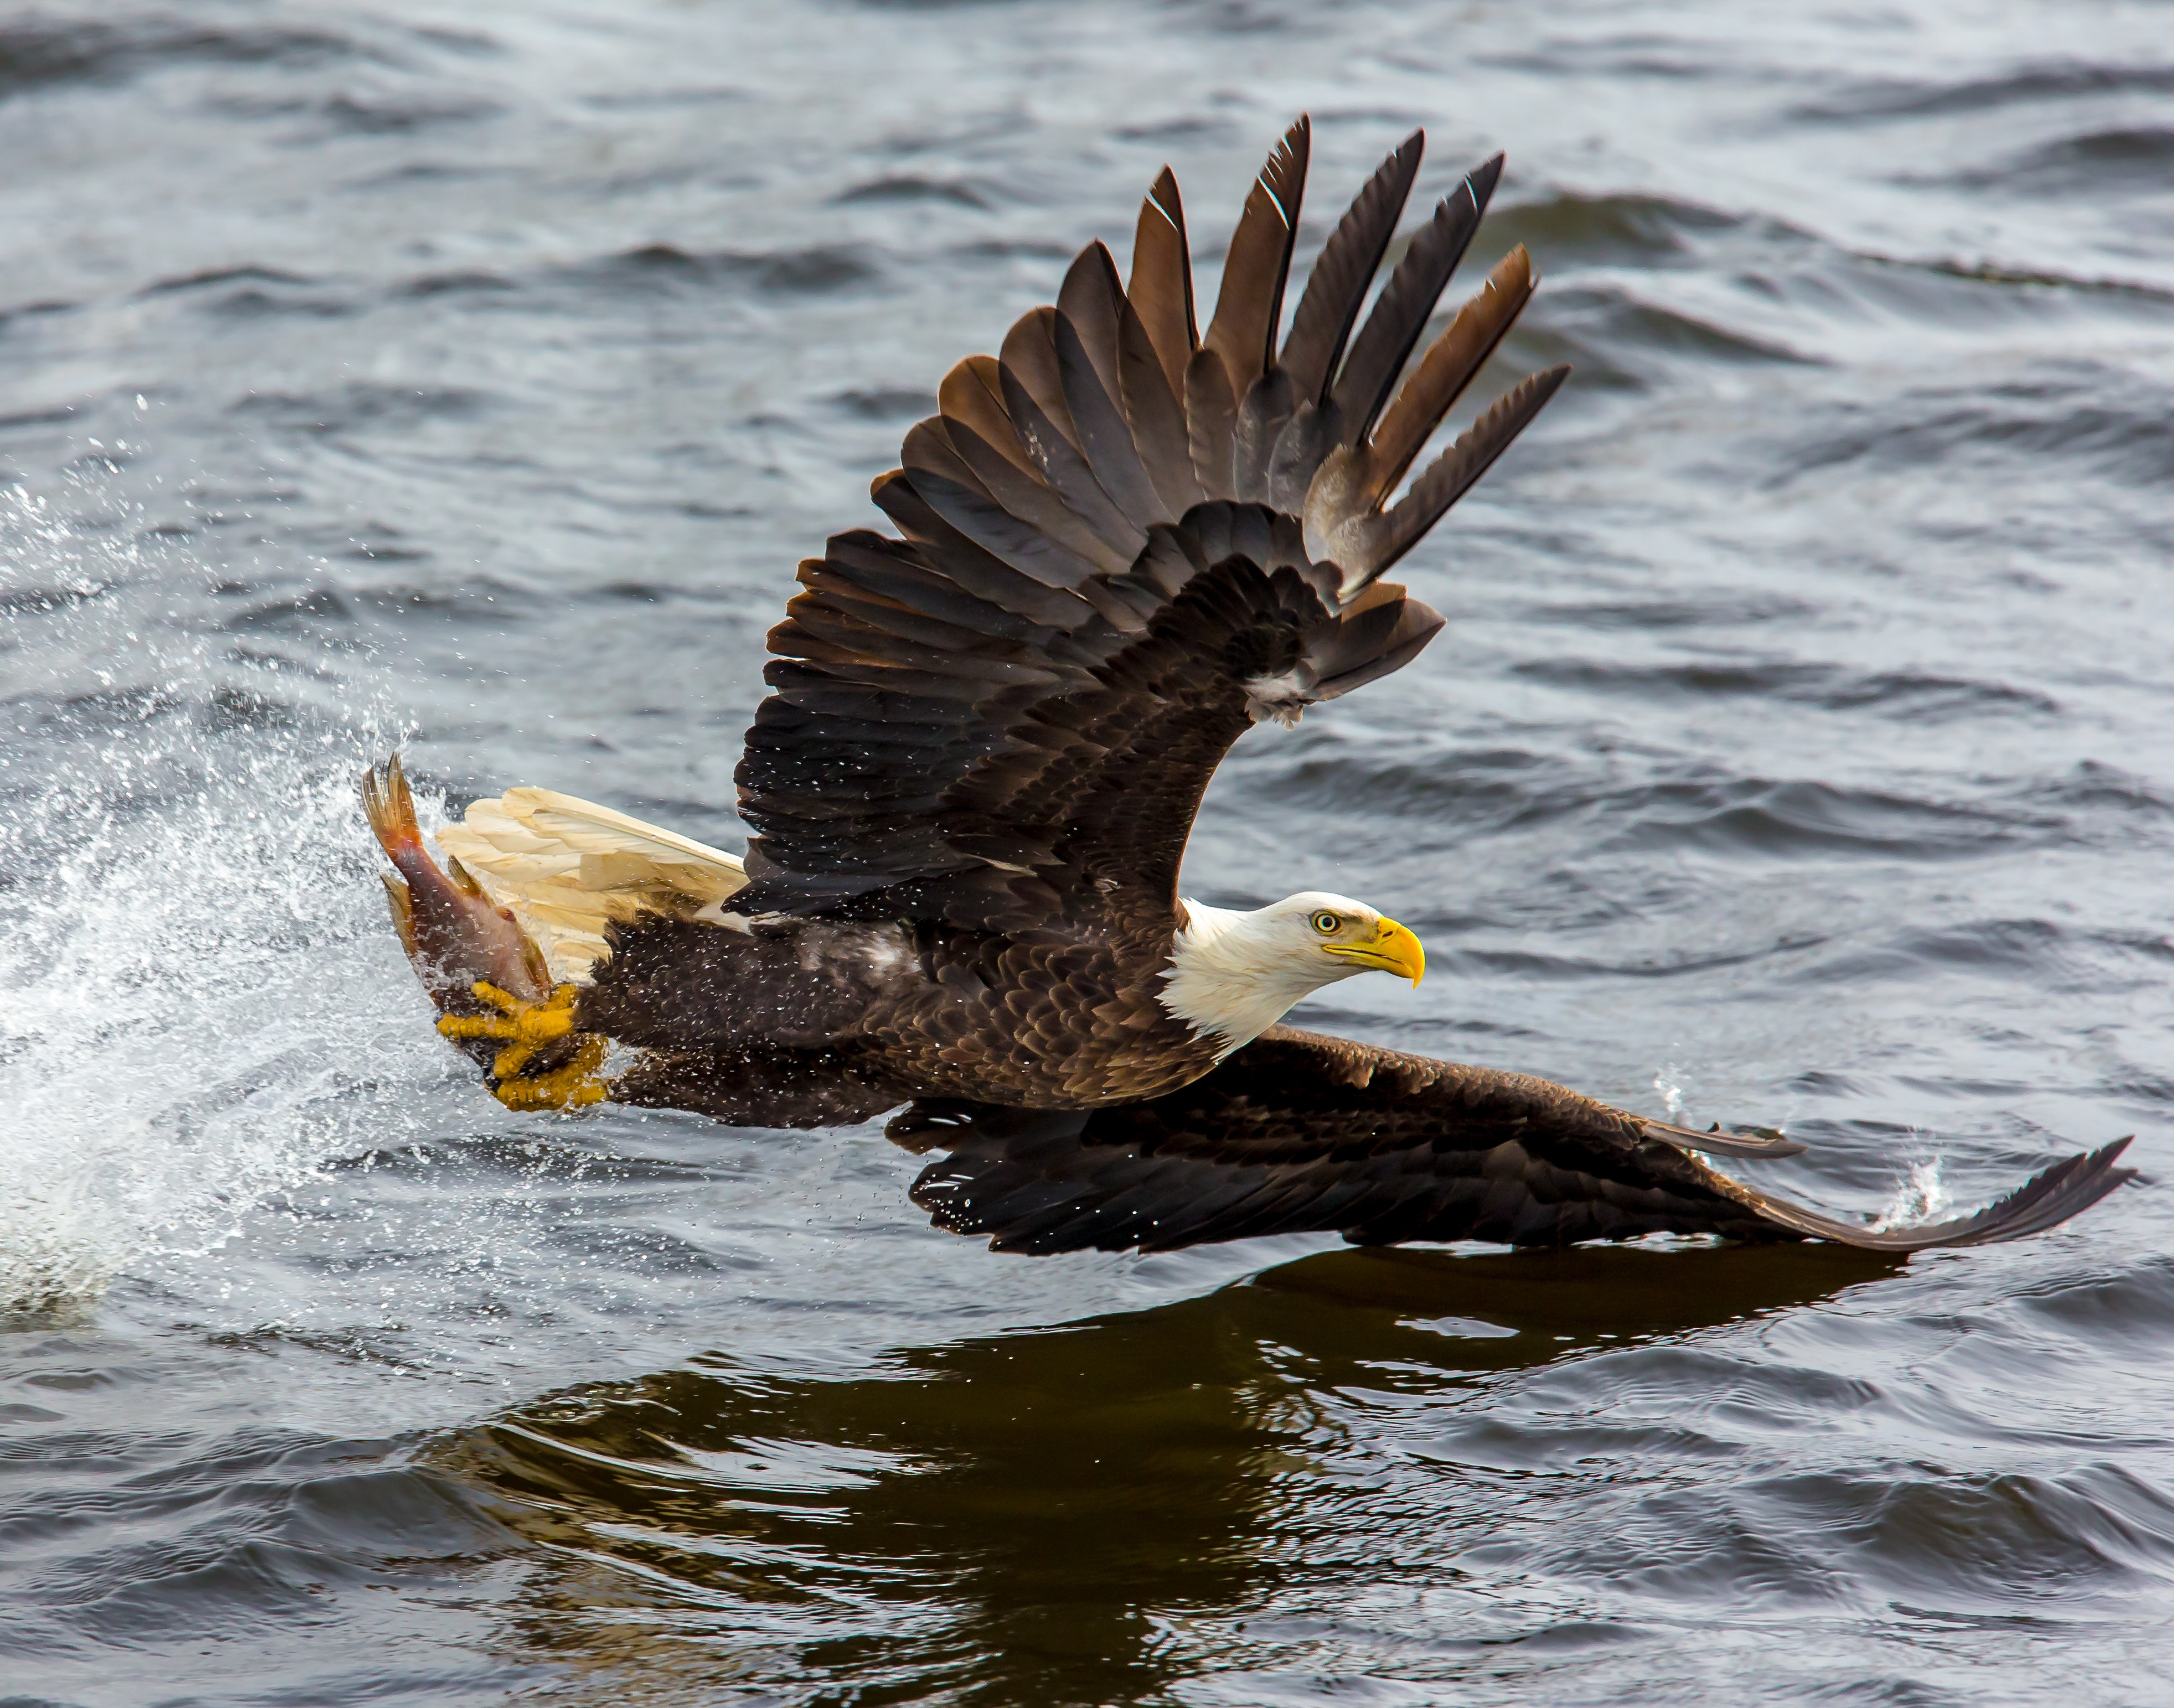 Bald eagle over the body of water photo